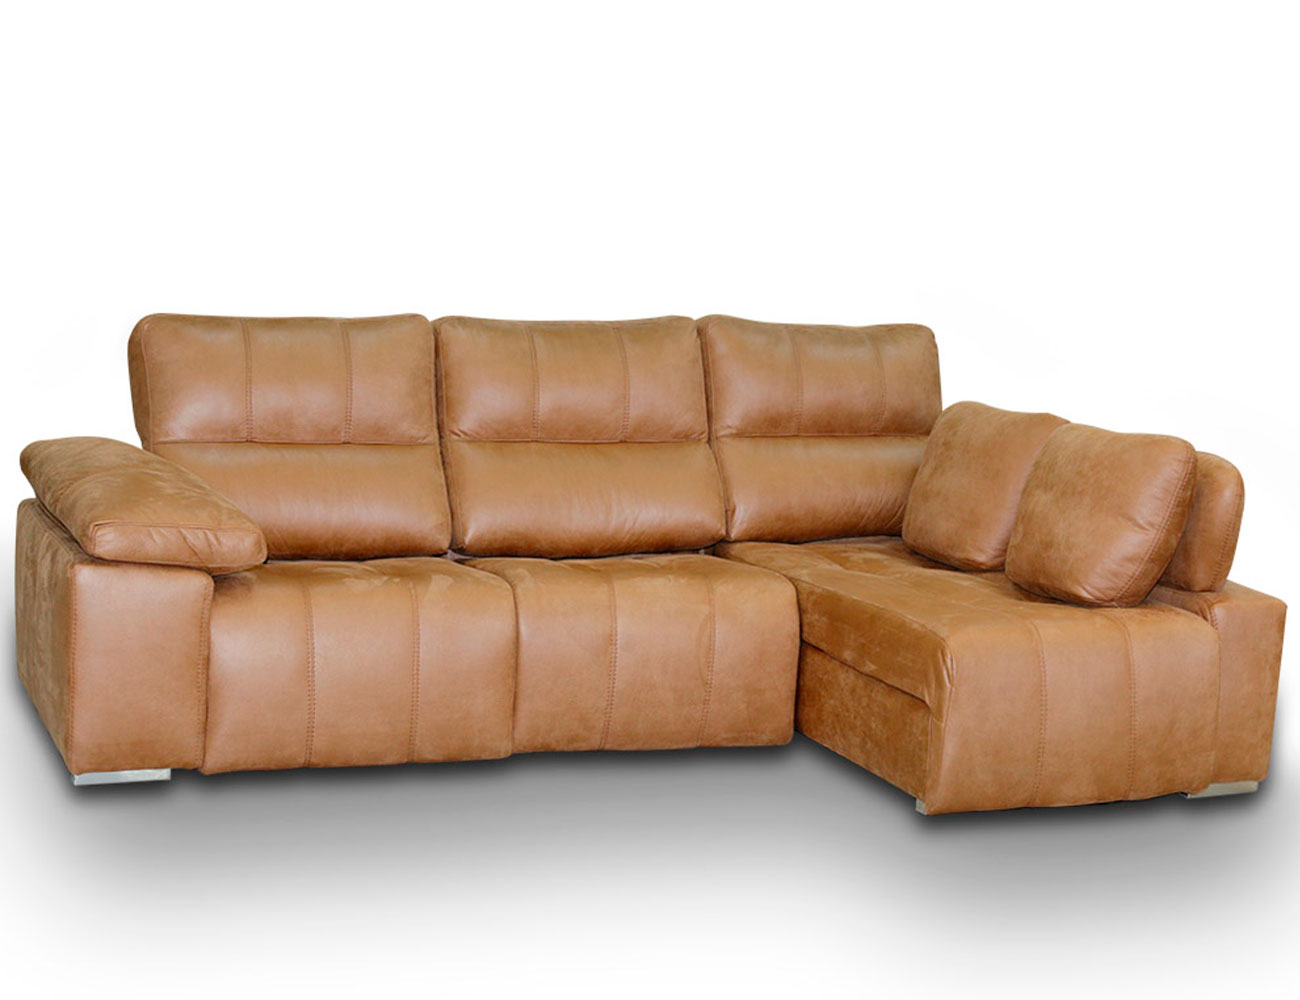 Sofa chaiselongue relax 2 motores anti manchas7